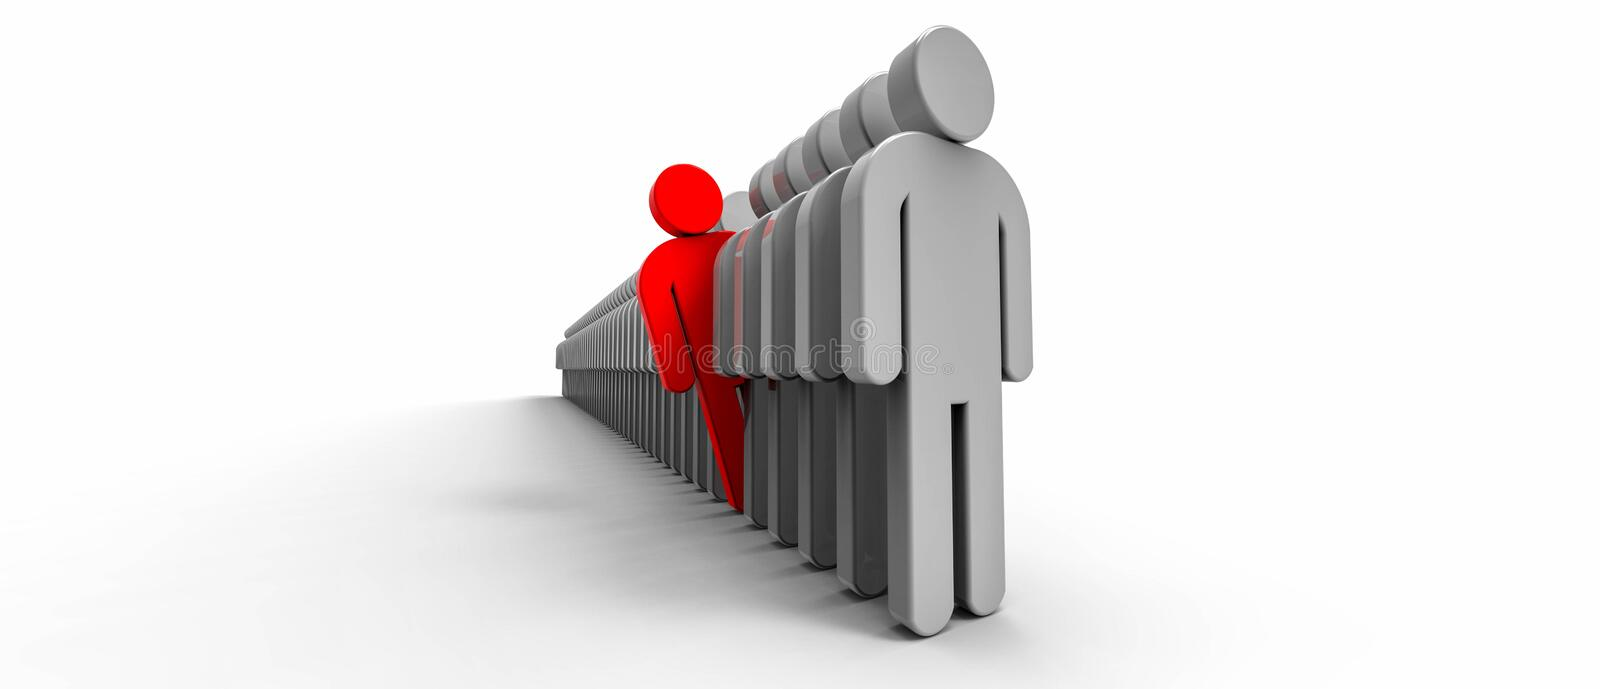 Stand out (be different) stock illustration